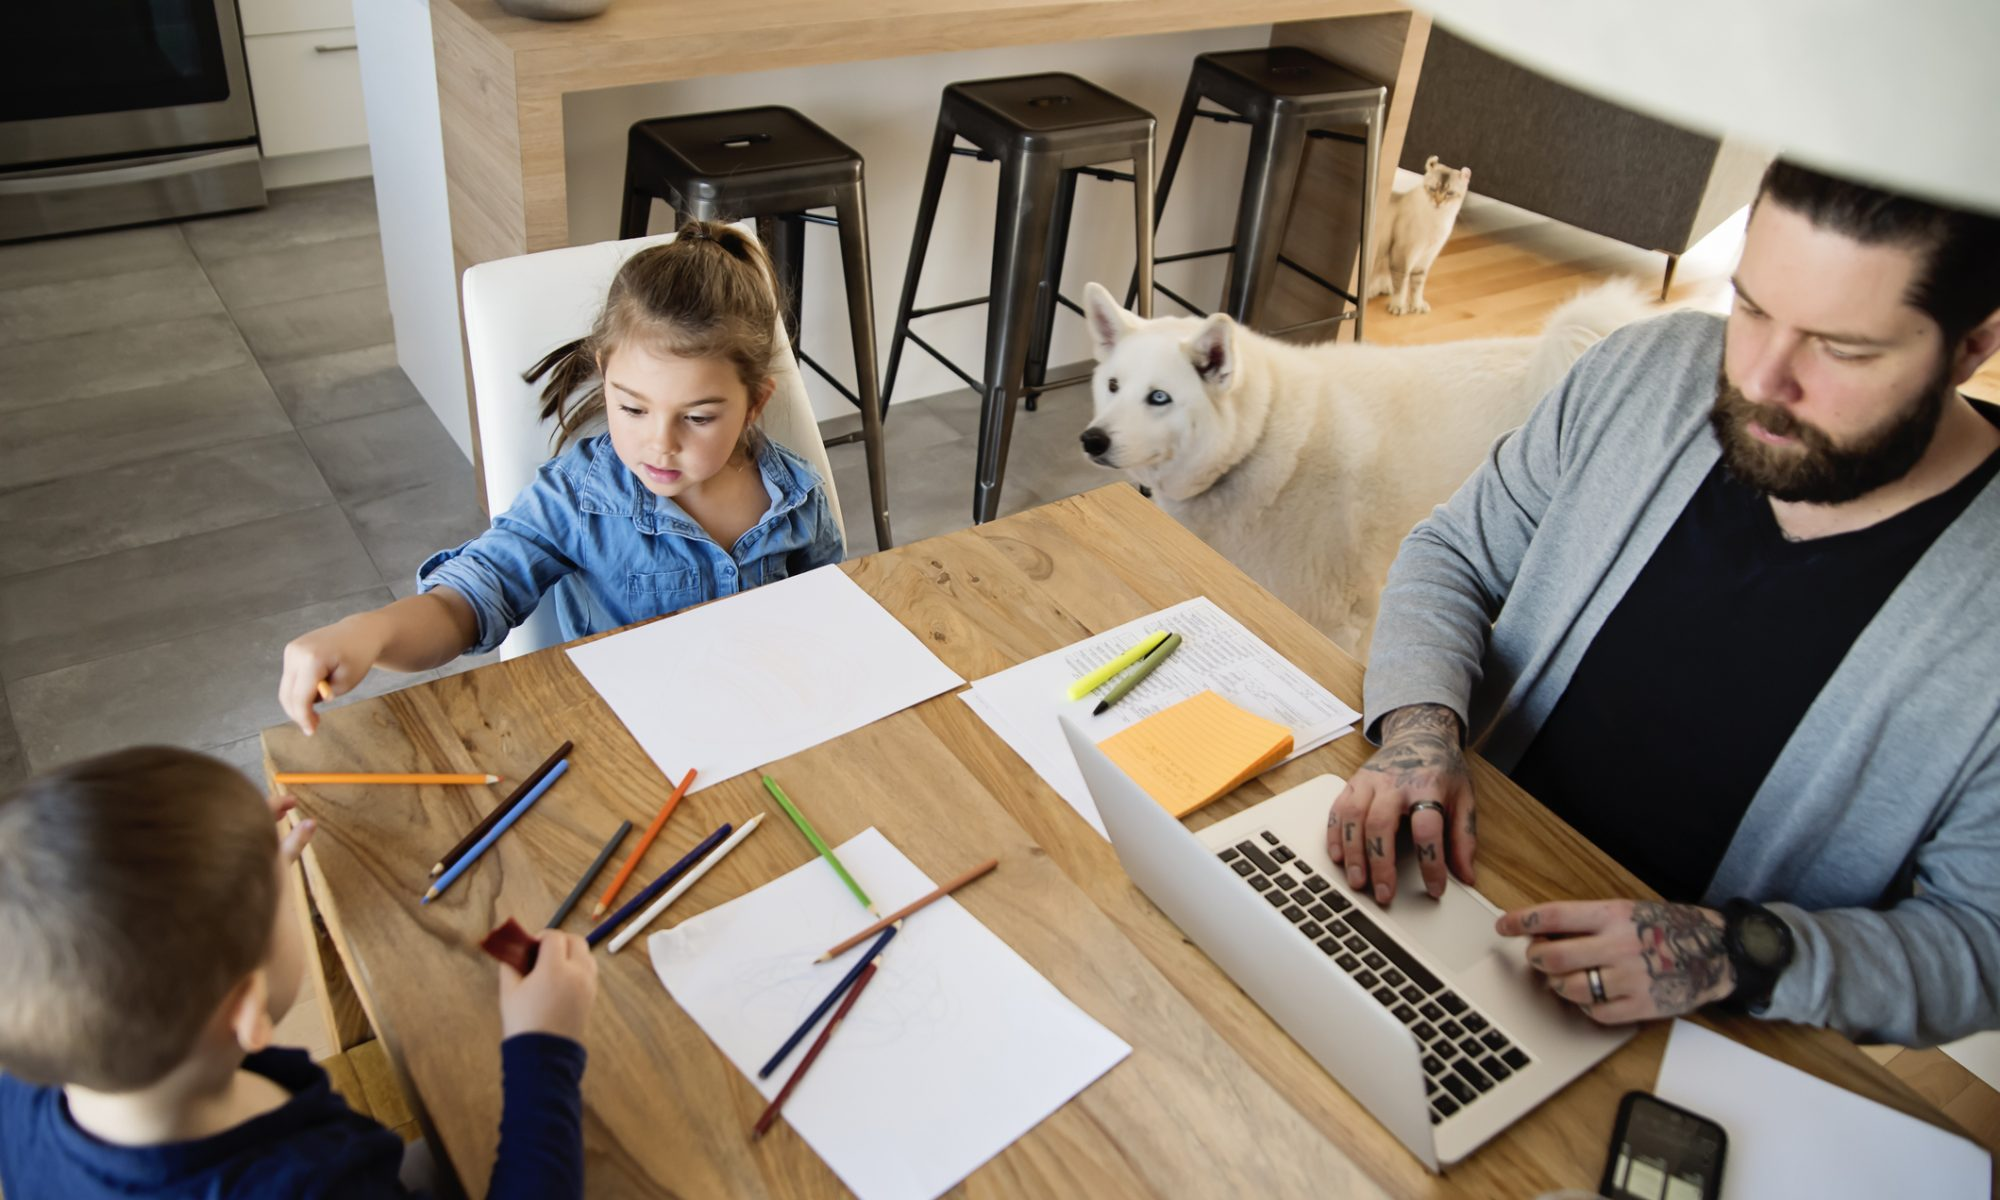 A father works from his kitchen table with two small children who color nearby